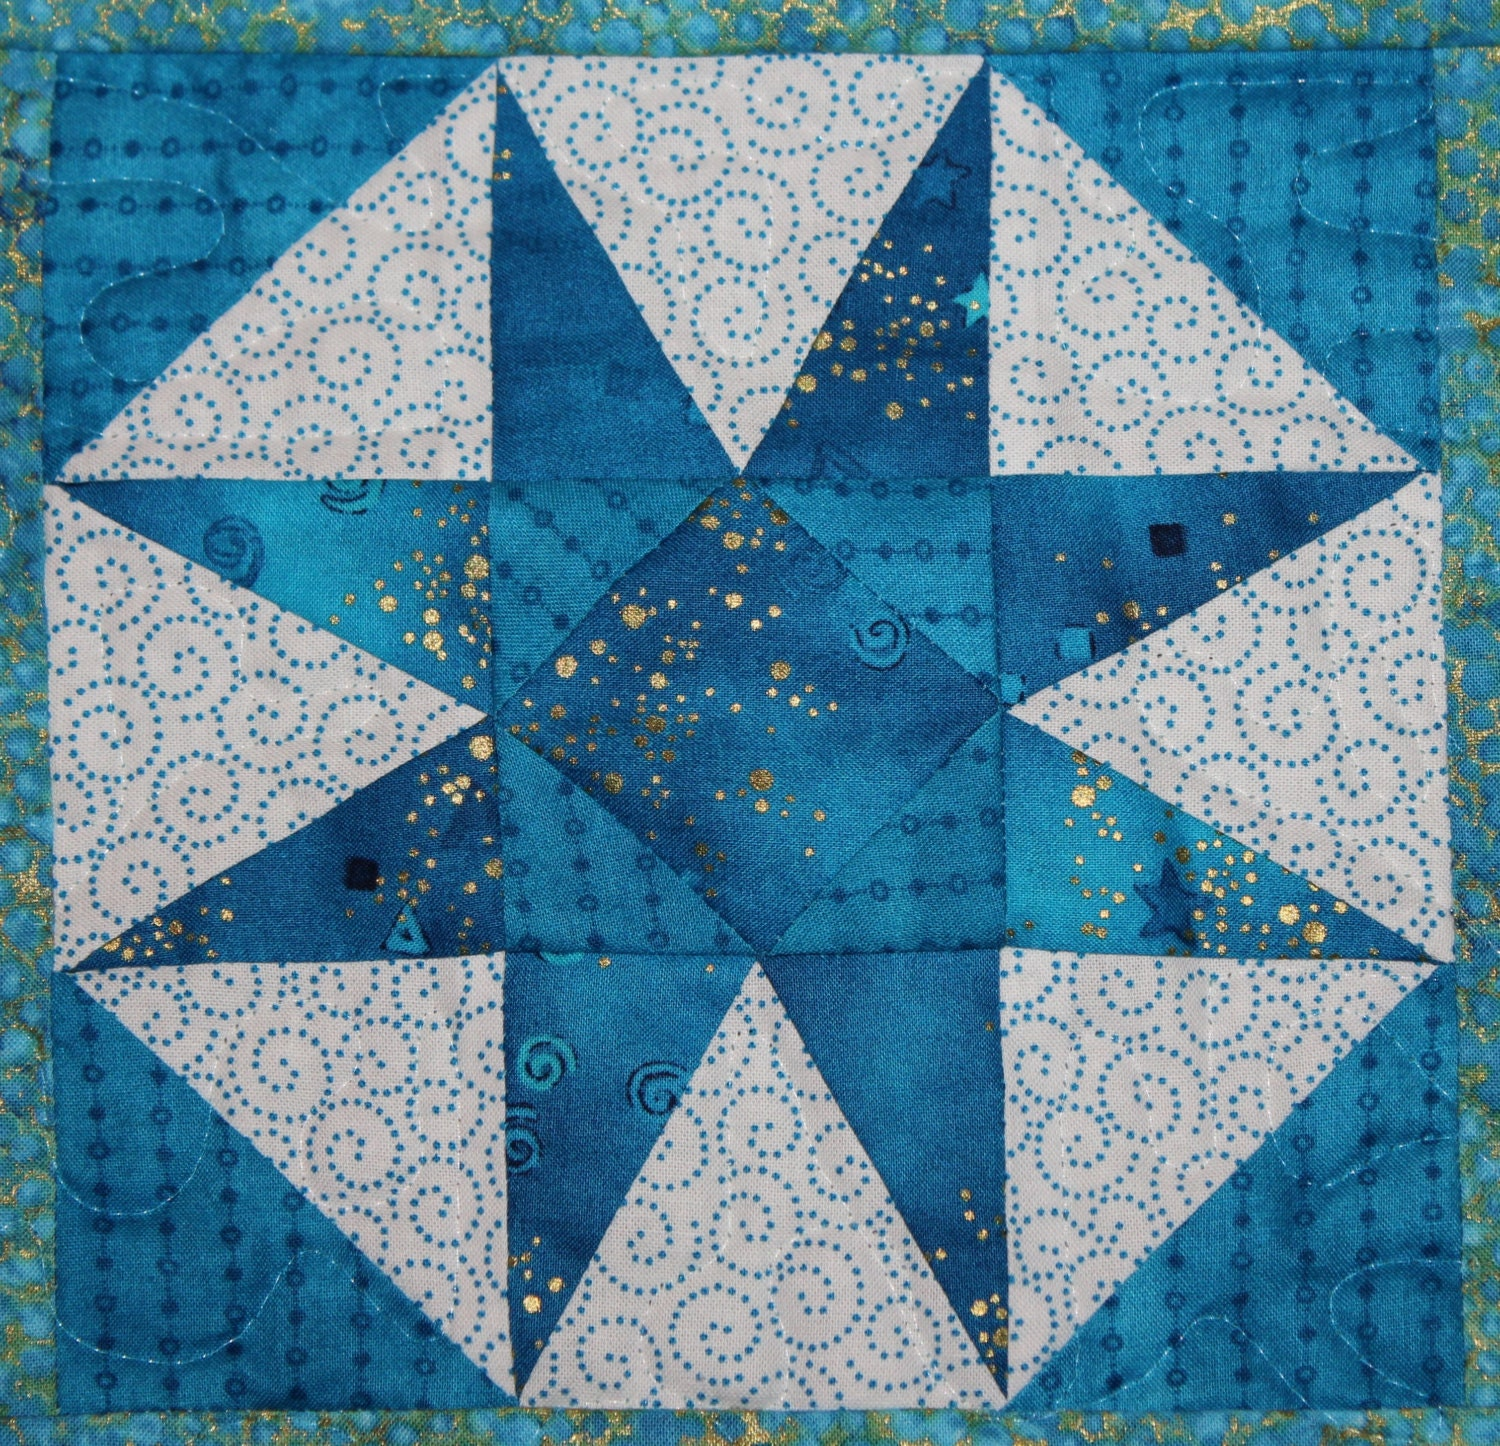 Storm at sea paper pieced PDF quilt pattern easy foundation : easy star quilt - Adamdwight.com